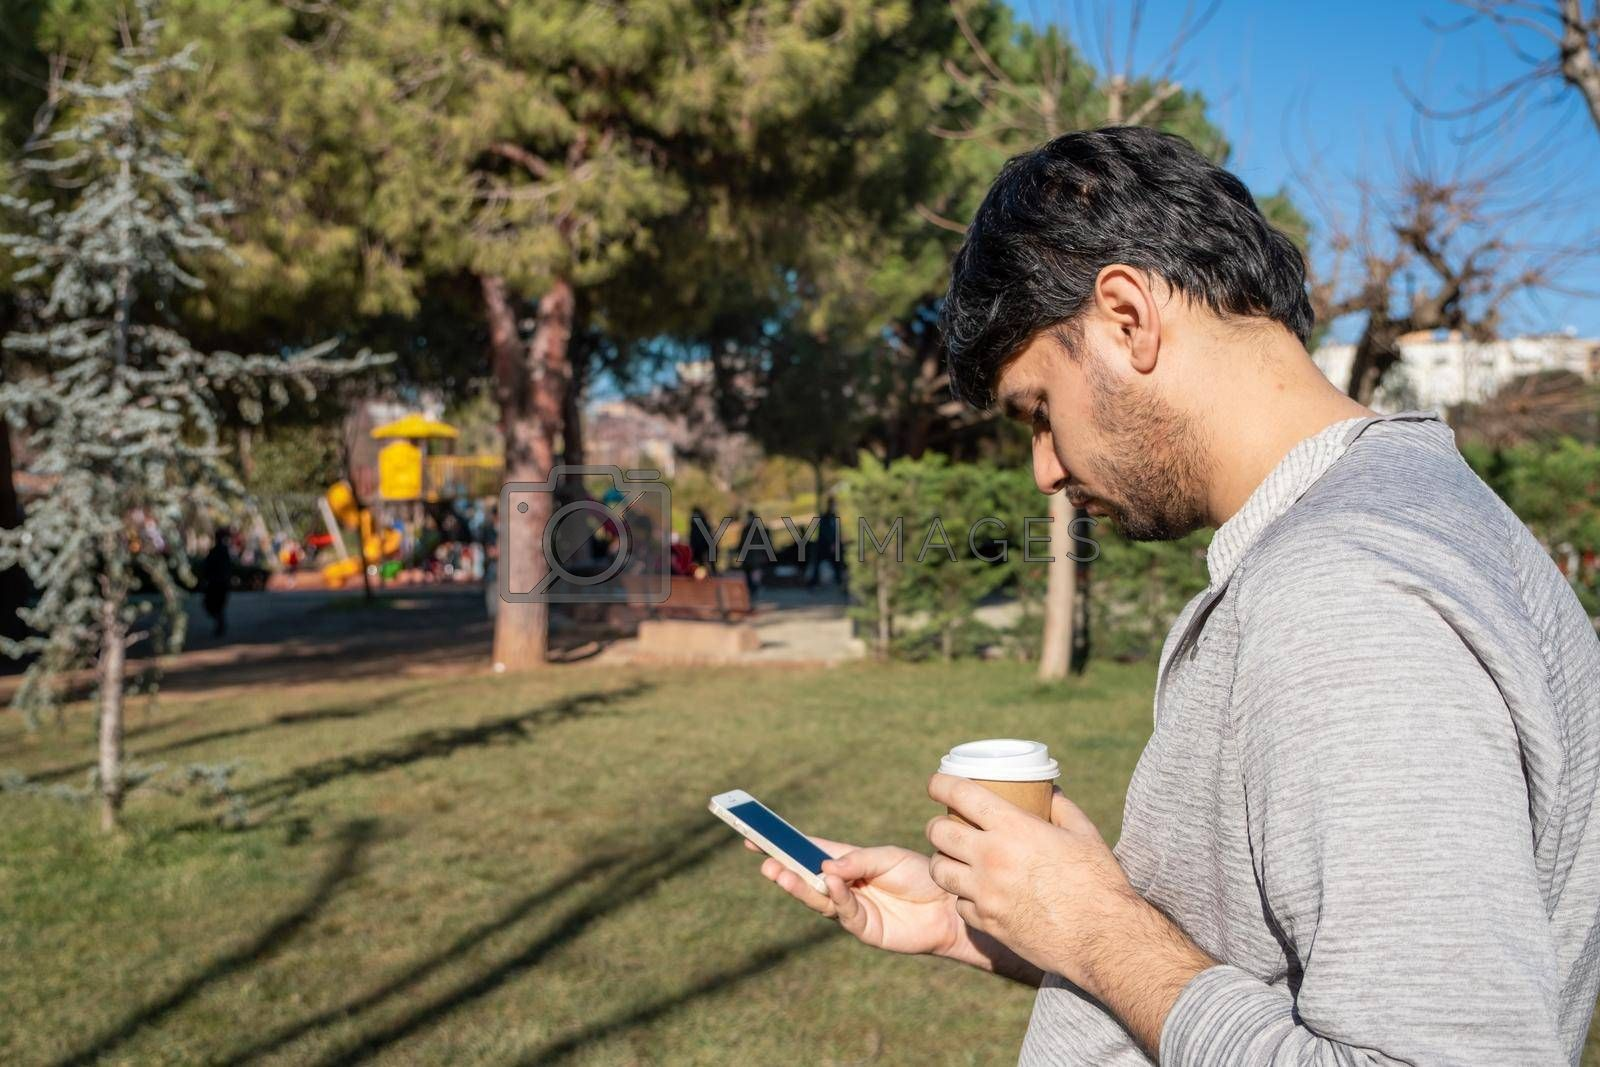 a tall man checks social media on his smart phone in front of green trees with copy space